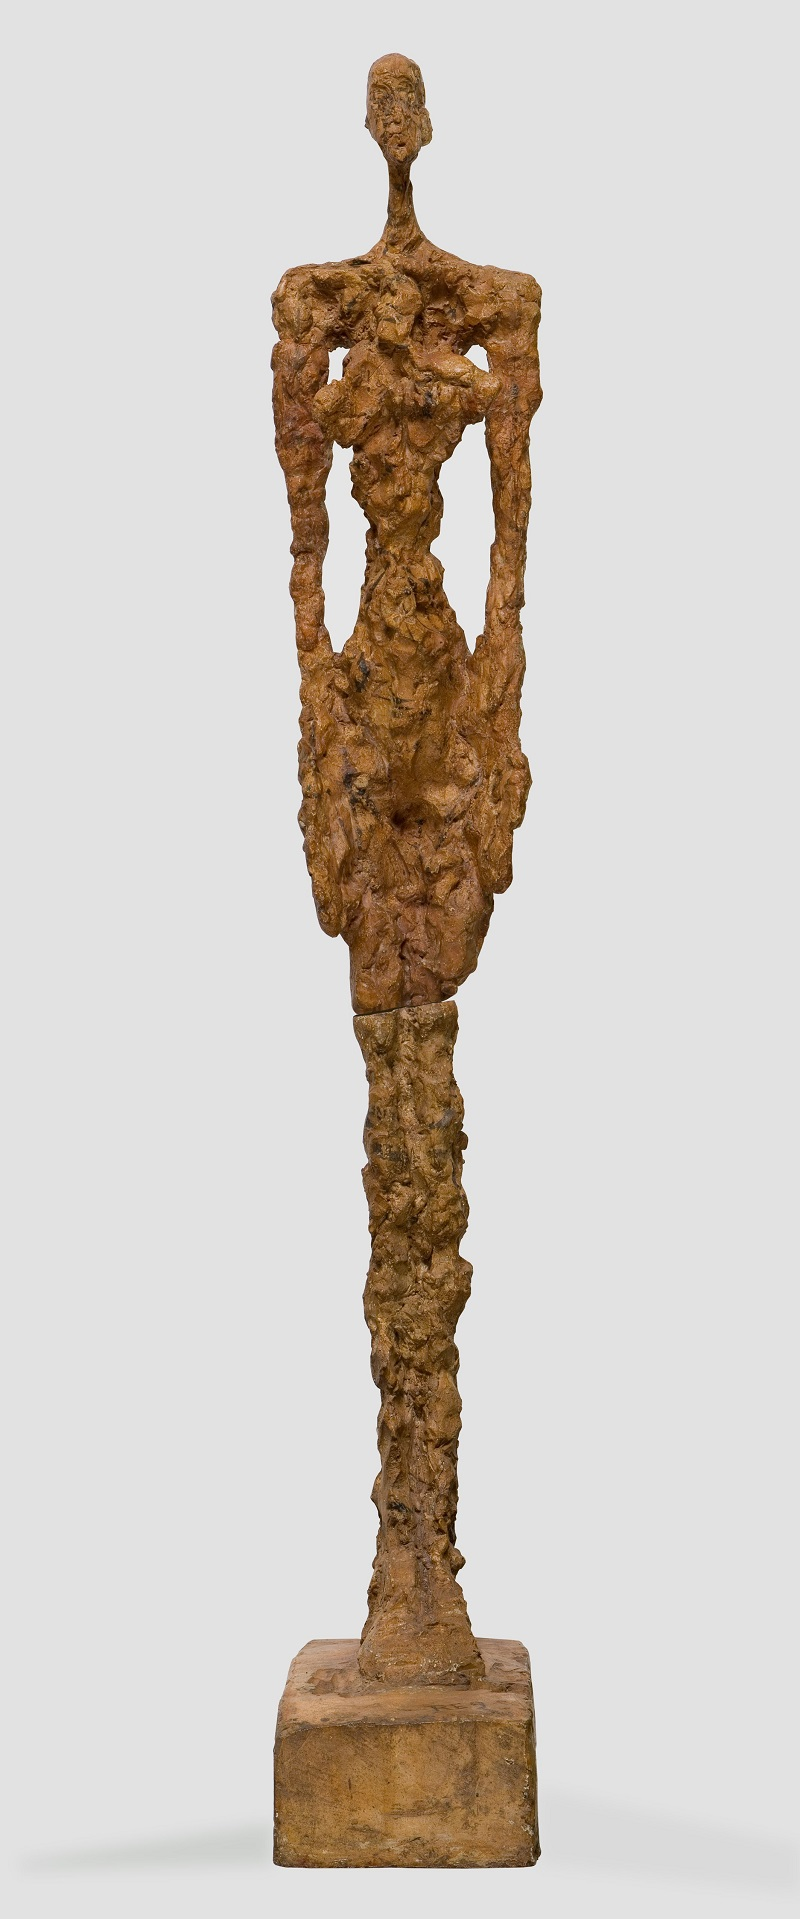 Woman of Venice IV,  1956, Plaster, Collection Fondation Alberto et Annette Giacometti, Paris  © Alberto Giacometti Estate, ACS/DACS, 2017